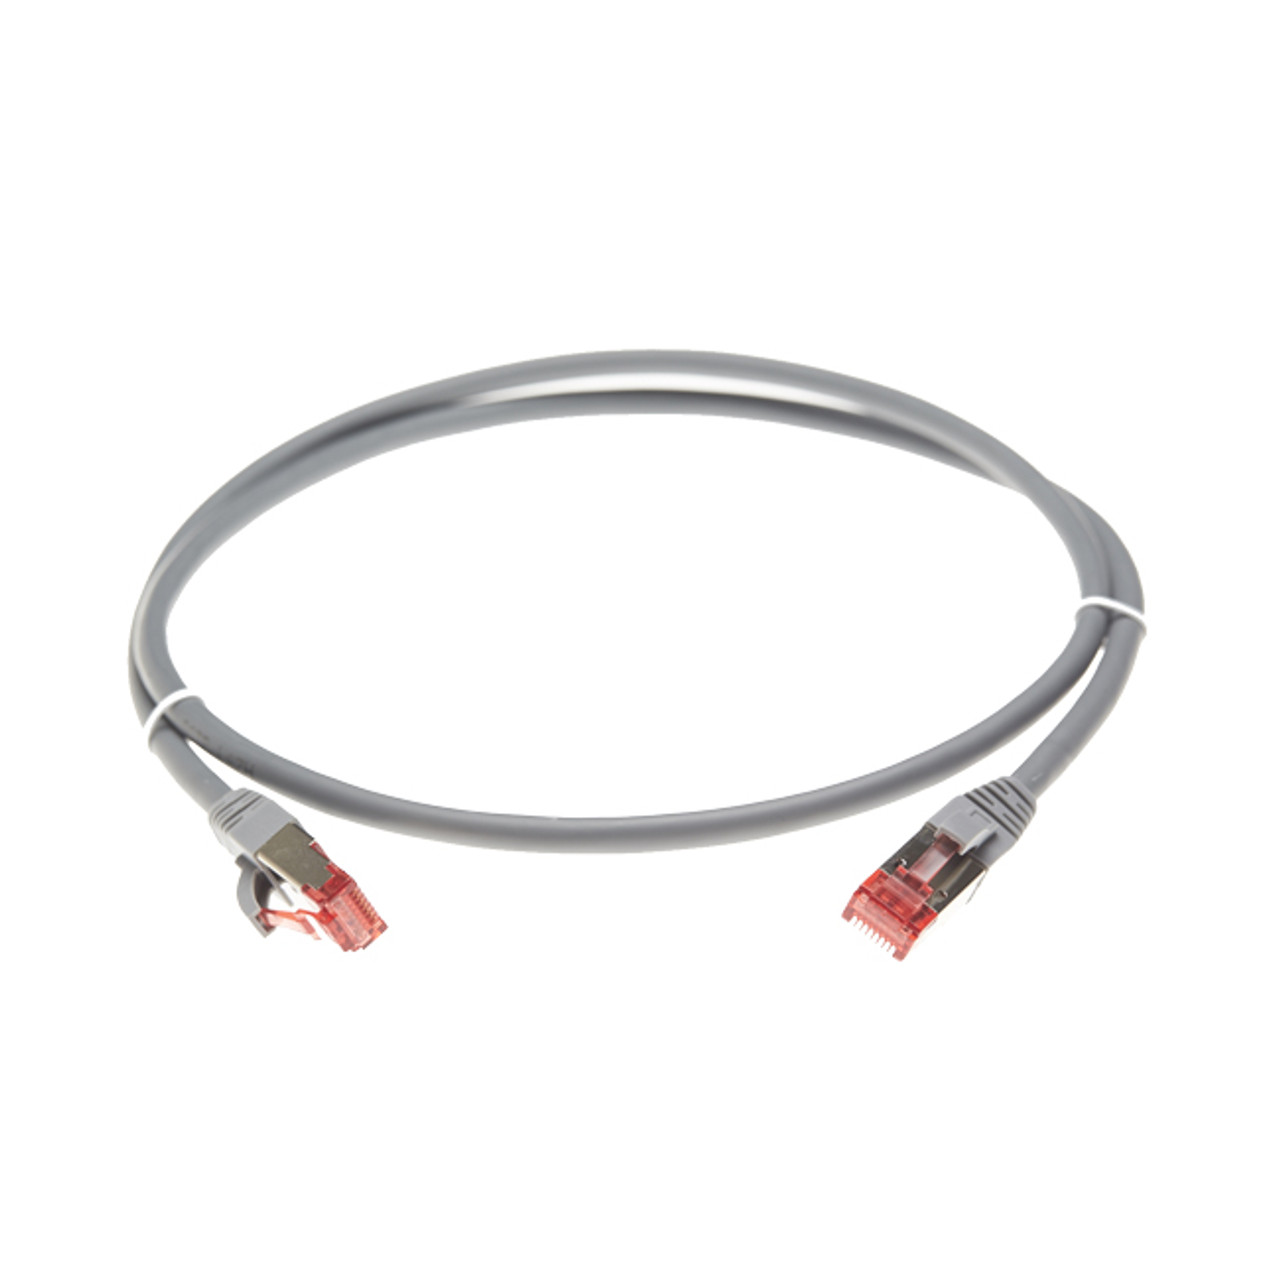 Image for 30m Cat 6A S/FTP LSZH Ethernet Network Cable. Grey CX Computer Superstore